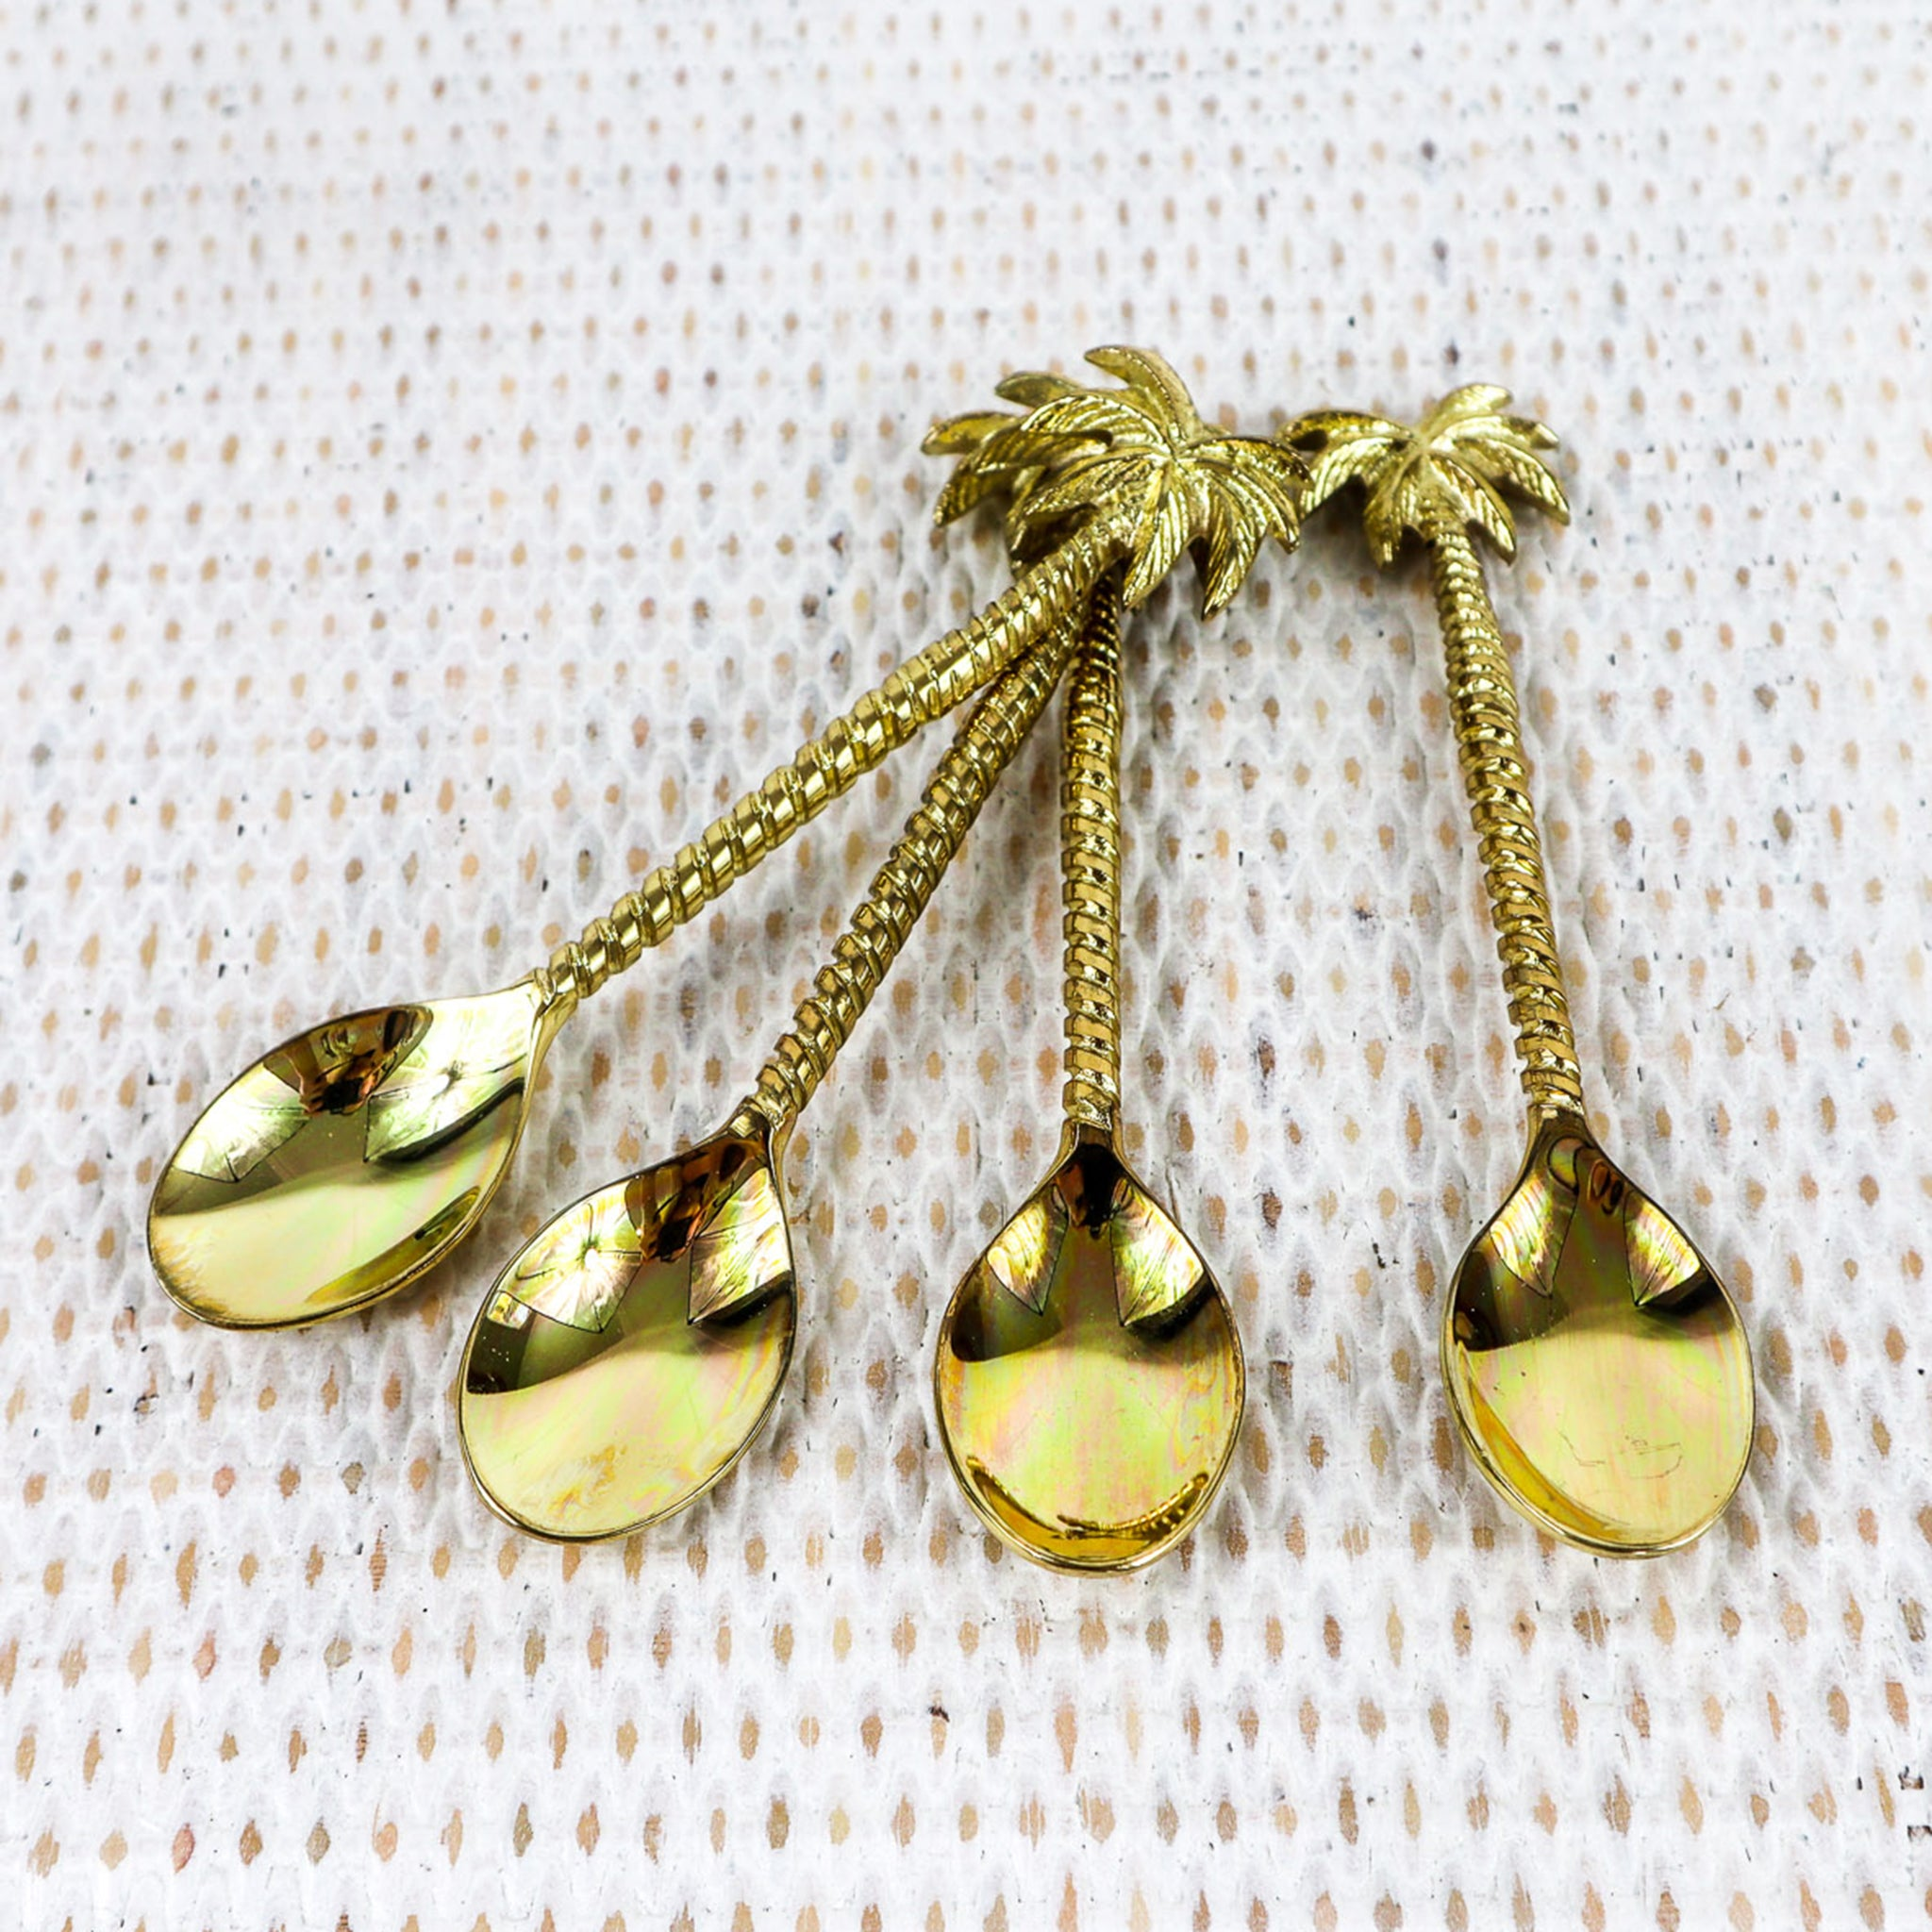 BRASS OR SILVER TEASPOONS - PALM TREE & PINEAPPLE